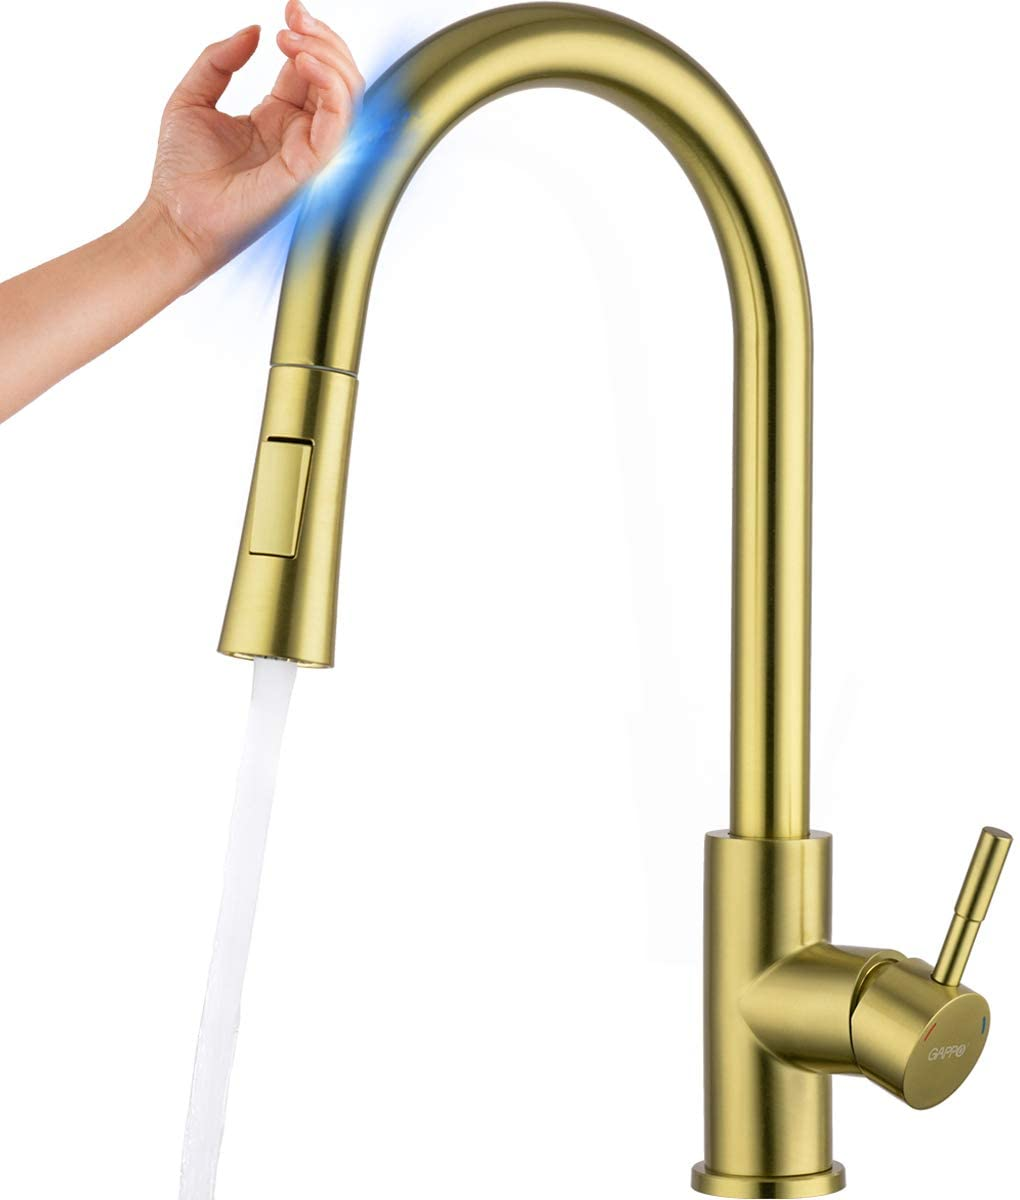 stoneway touch kitchen faucet with pull down sprayer brushed gold touch on kitchen faucet with pull down sprayer champagne gold stainless steel